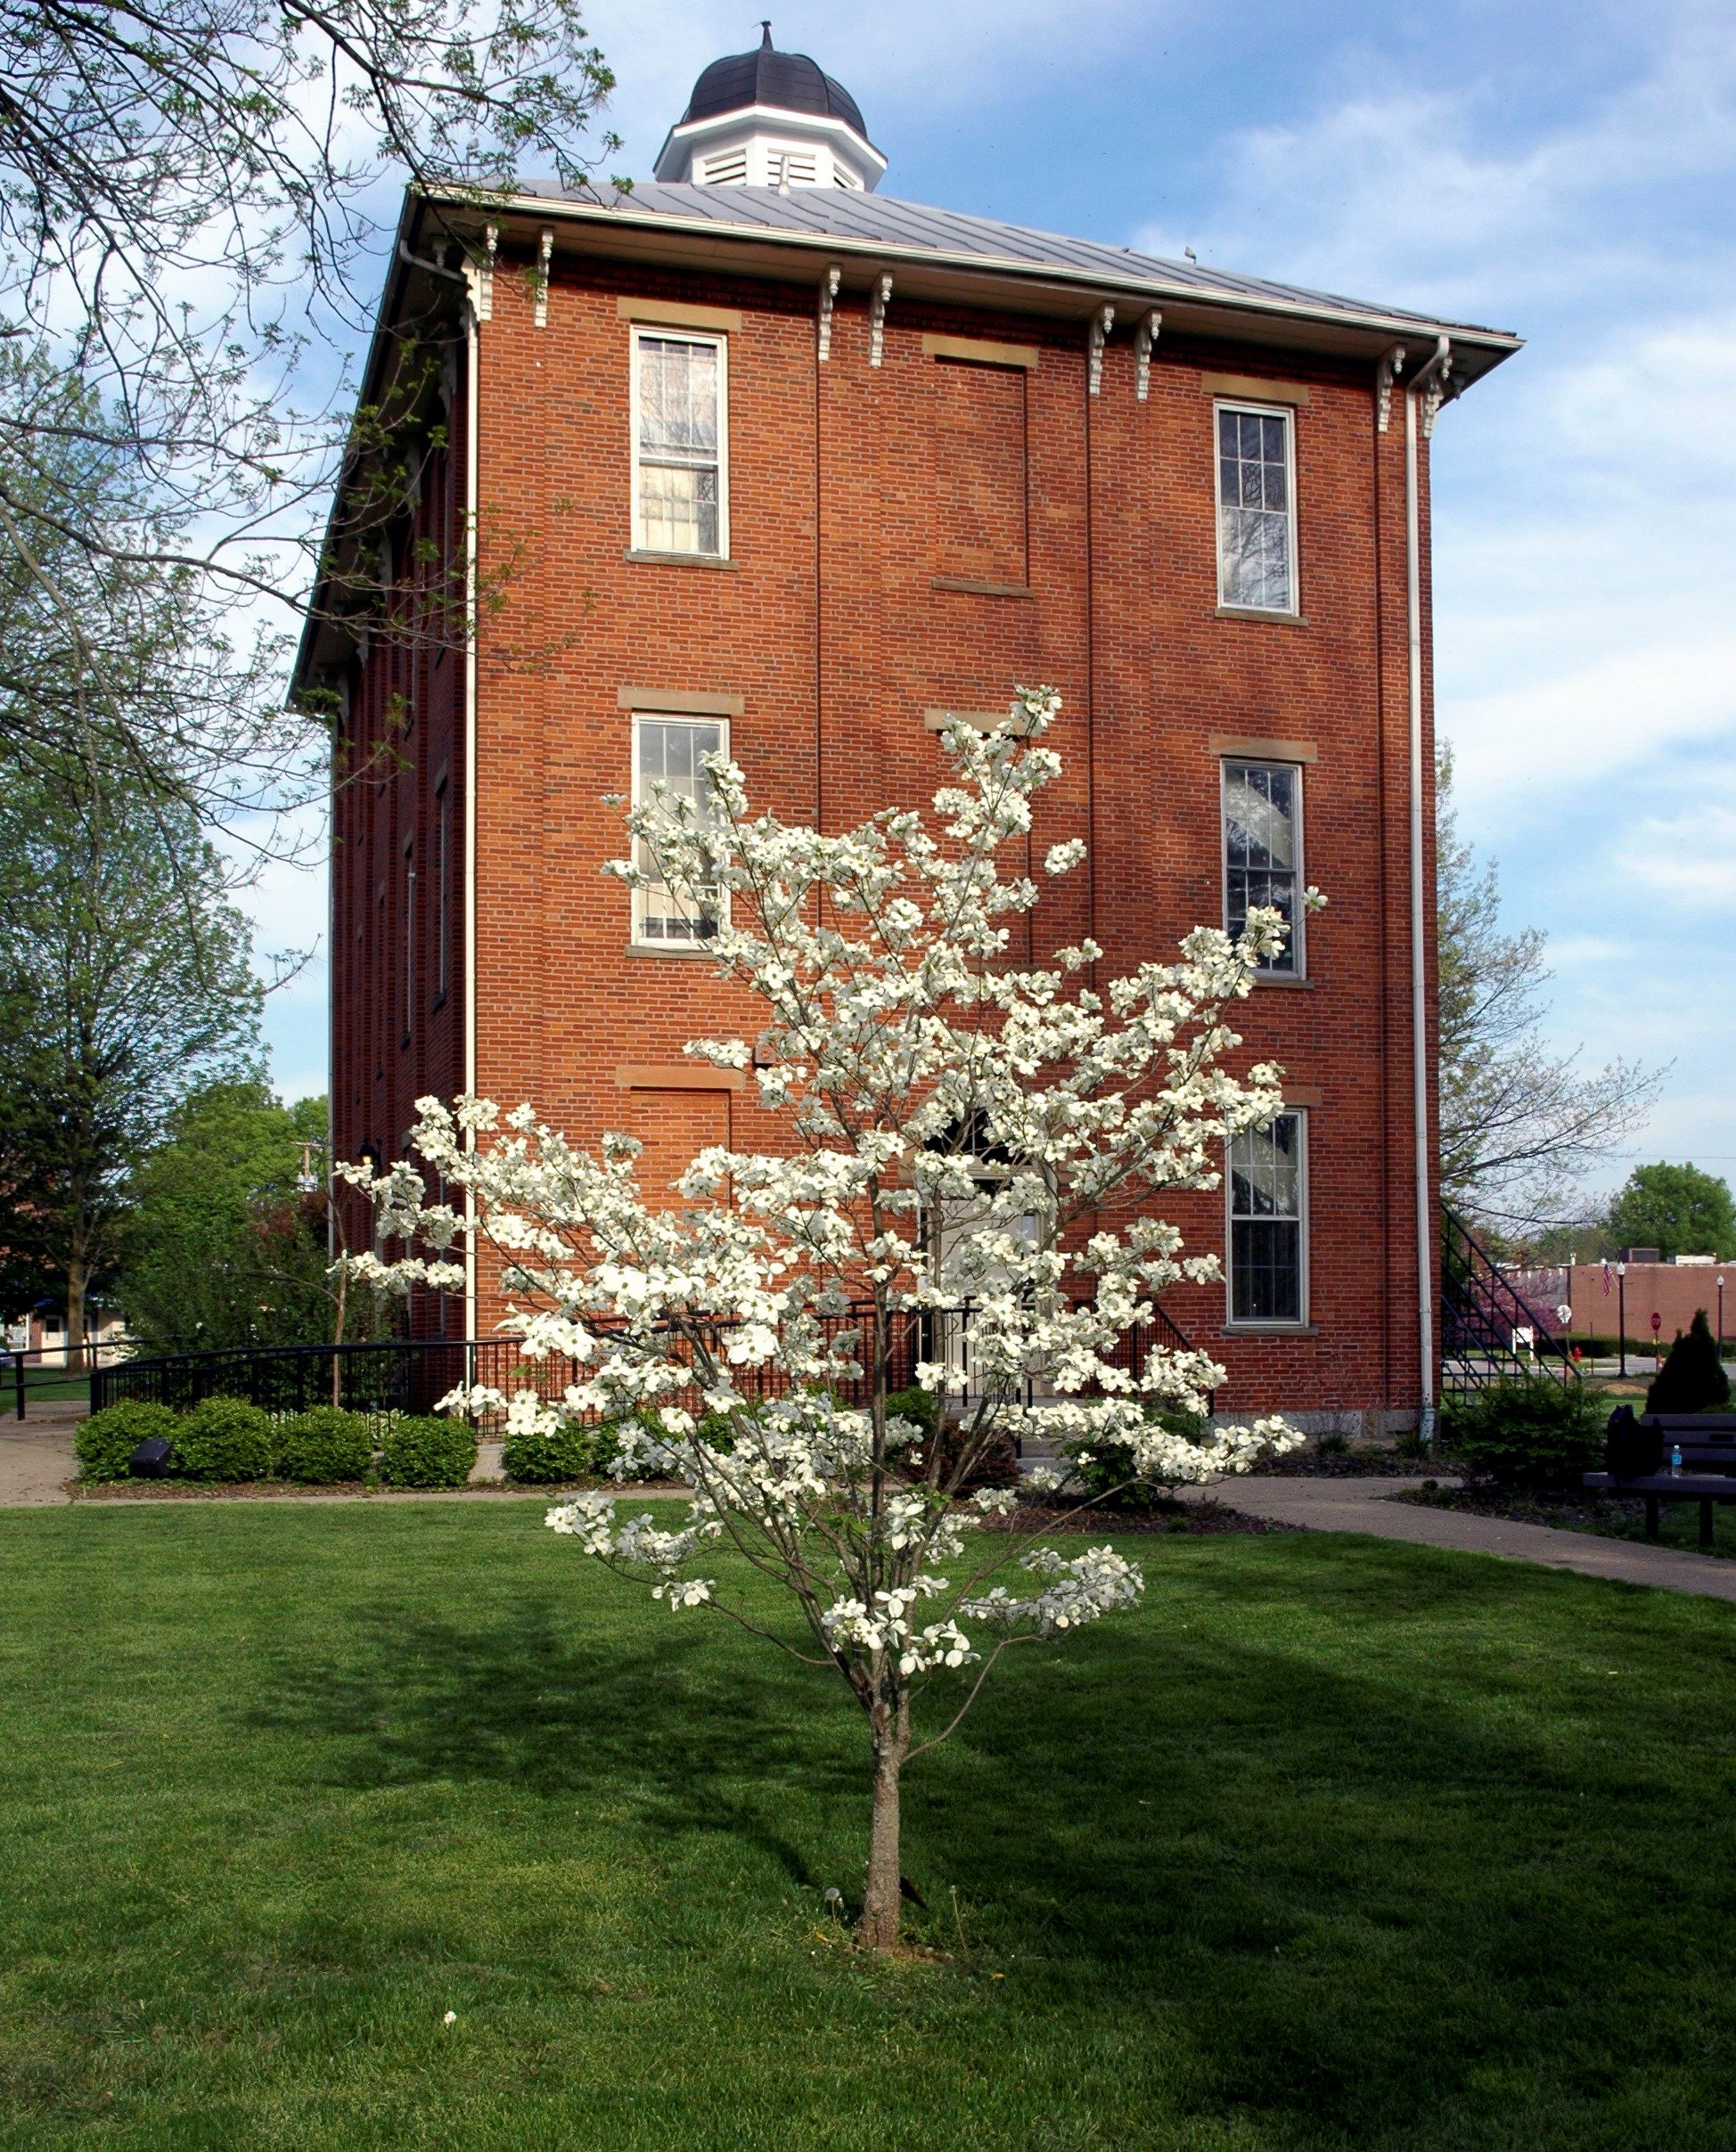 A tree with flowers in front of the Town Hall